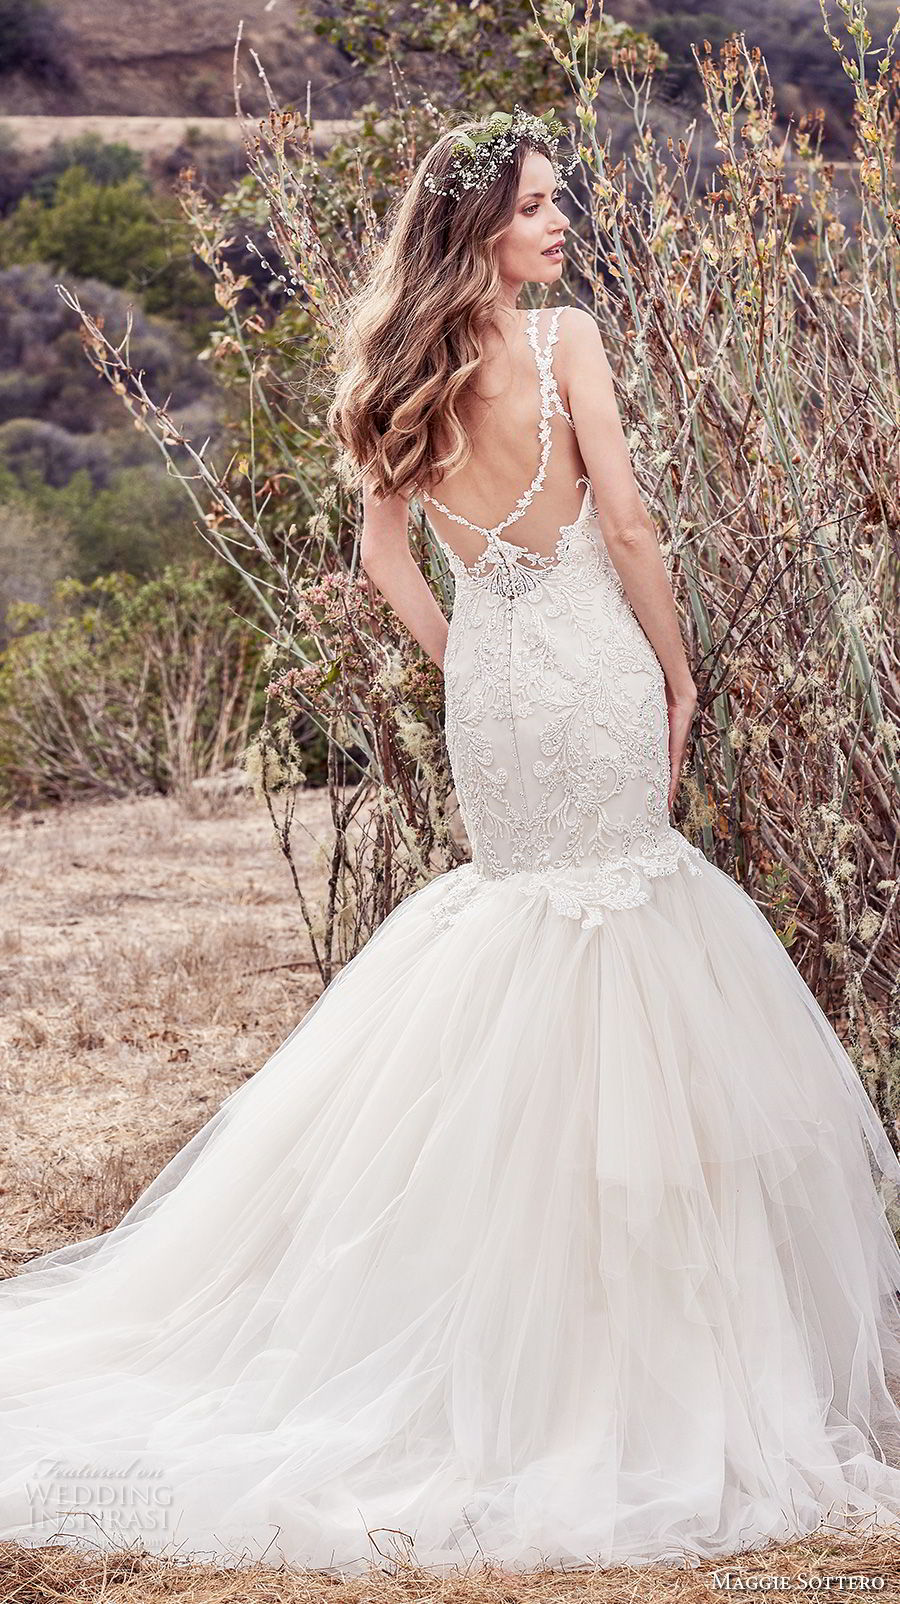 maggie sottero fall 2017 bridal sleeveless with strap sweetheart neckline heavily embellished bodice elegant mermaid wedding dress open scoop back chapel train (610) bv